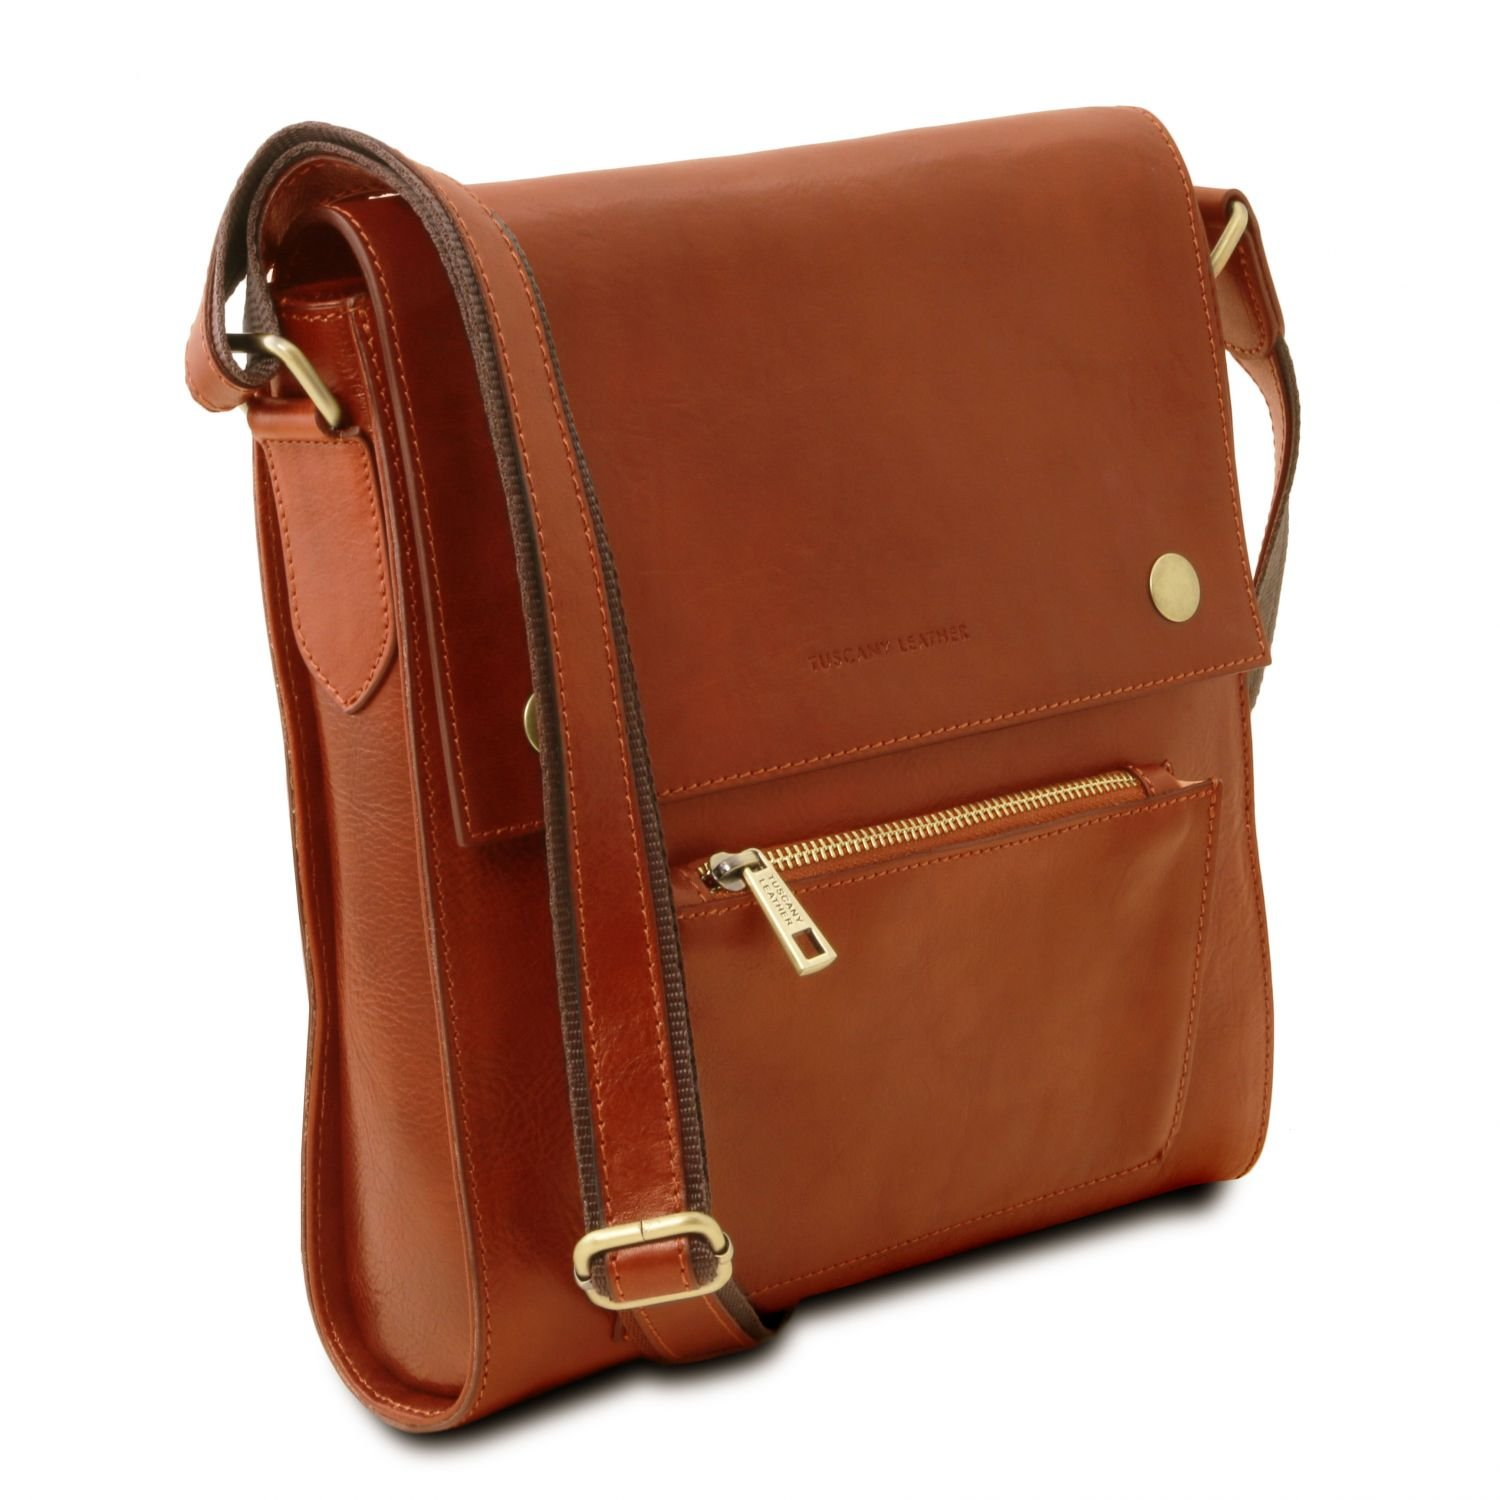 Tuscany Leather Oliver Leather crossbody bag for men with front pocket Honey by Tuscany Leather (Image #3)